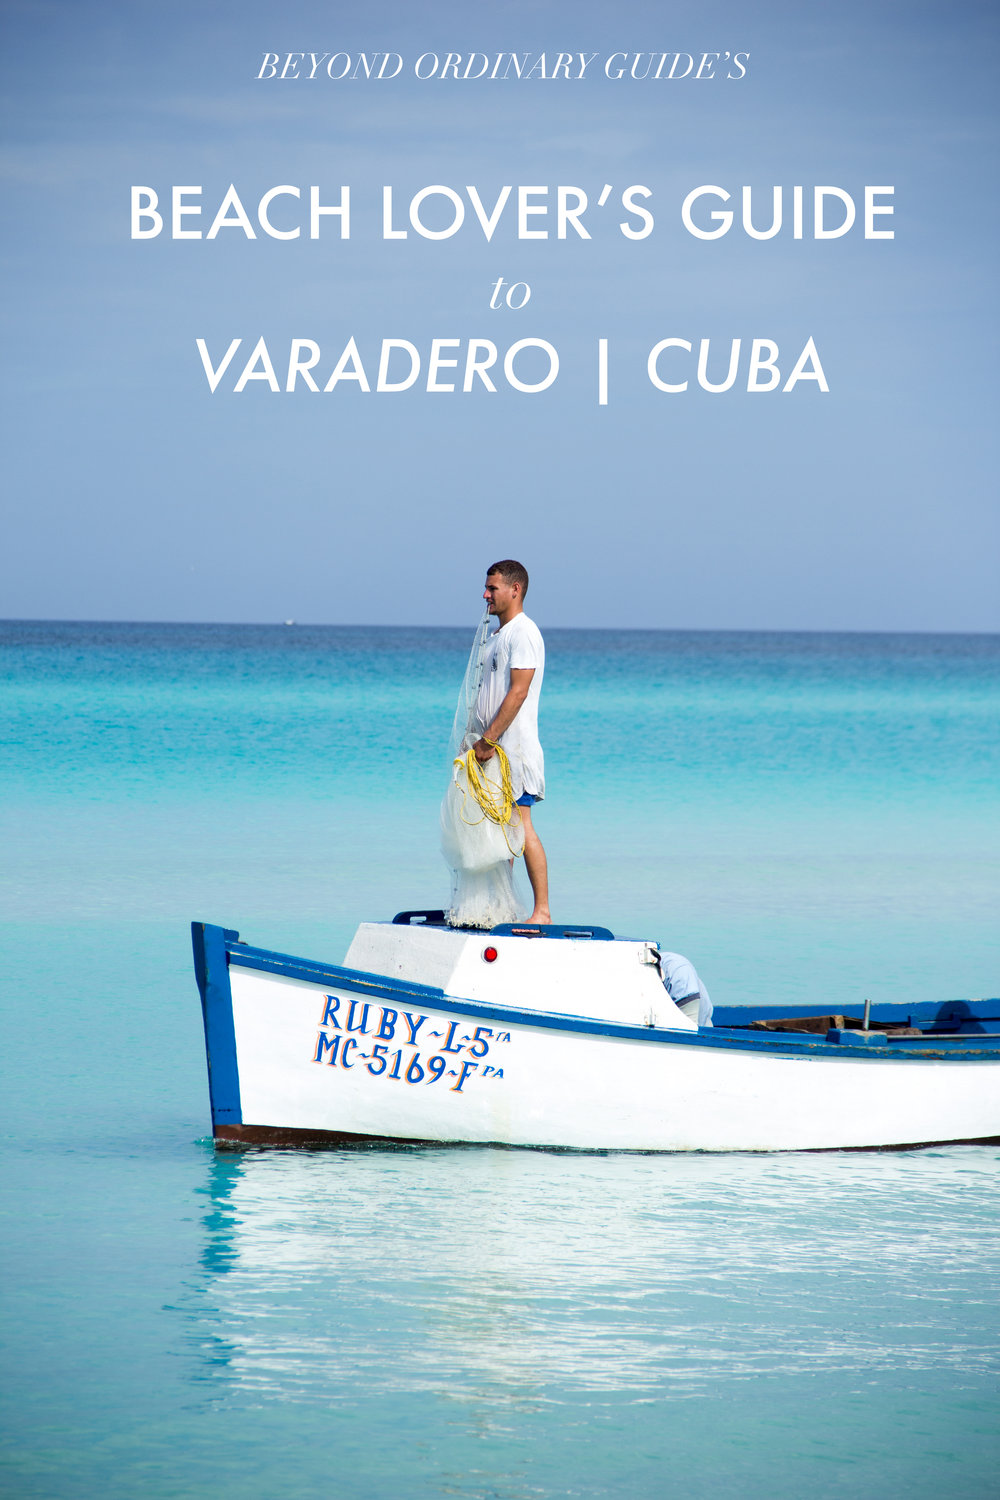 Beyond Ordinary Guide's Beach Lover's Guide to Varadero, Cuba